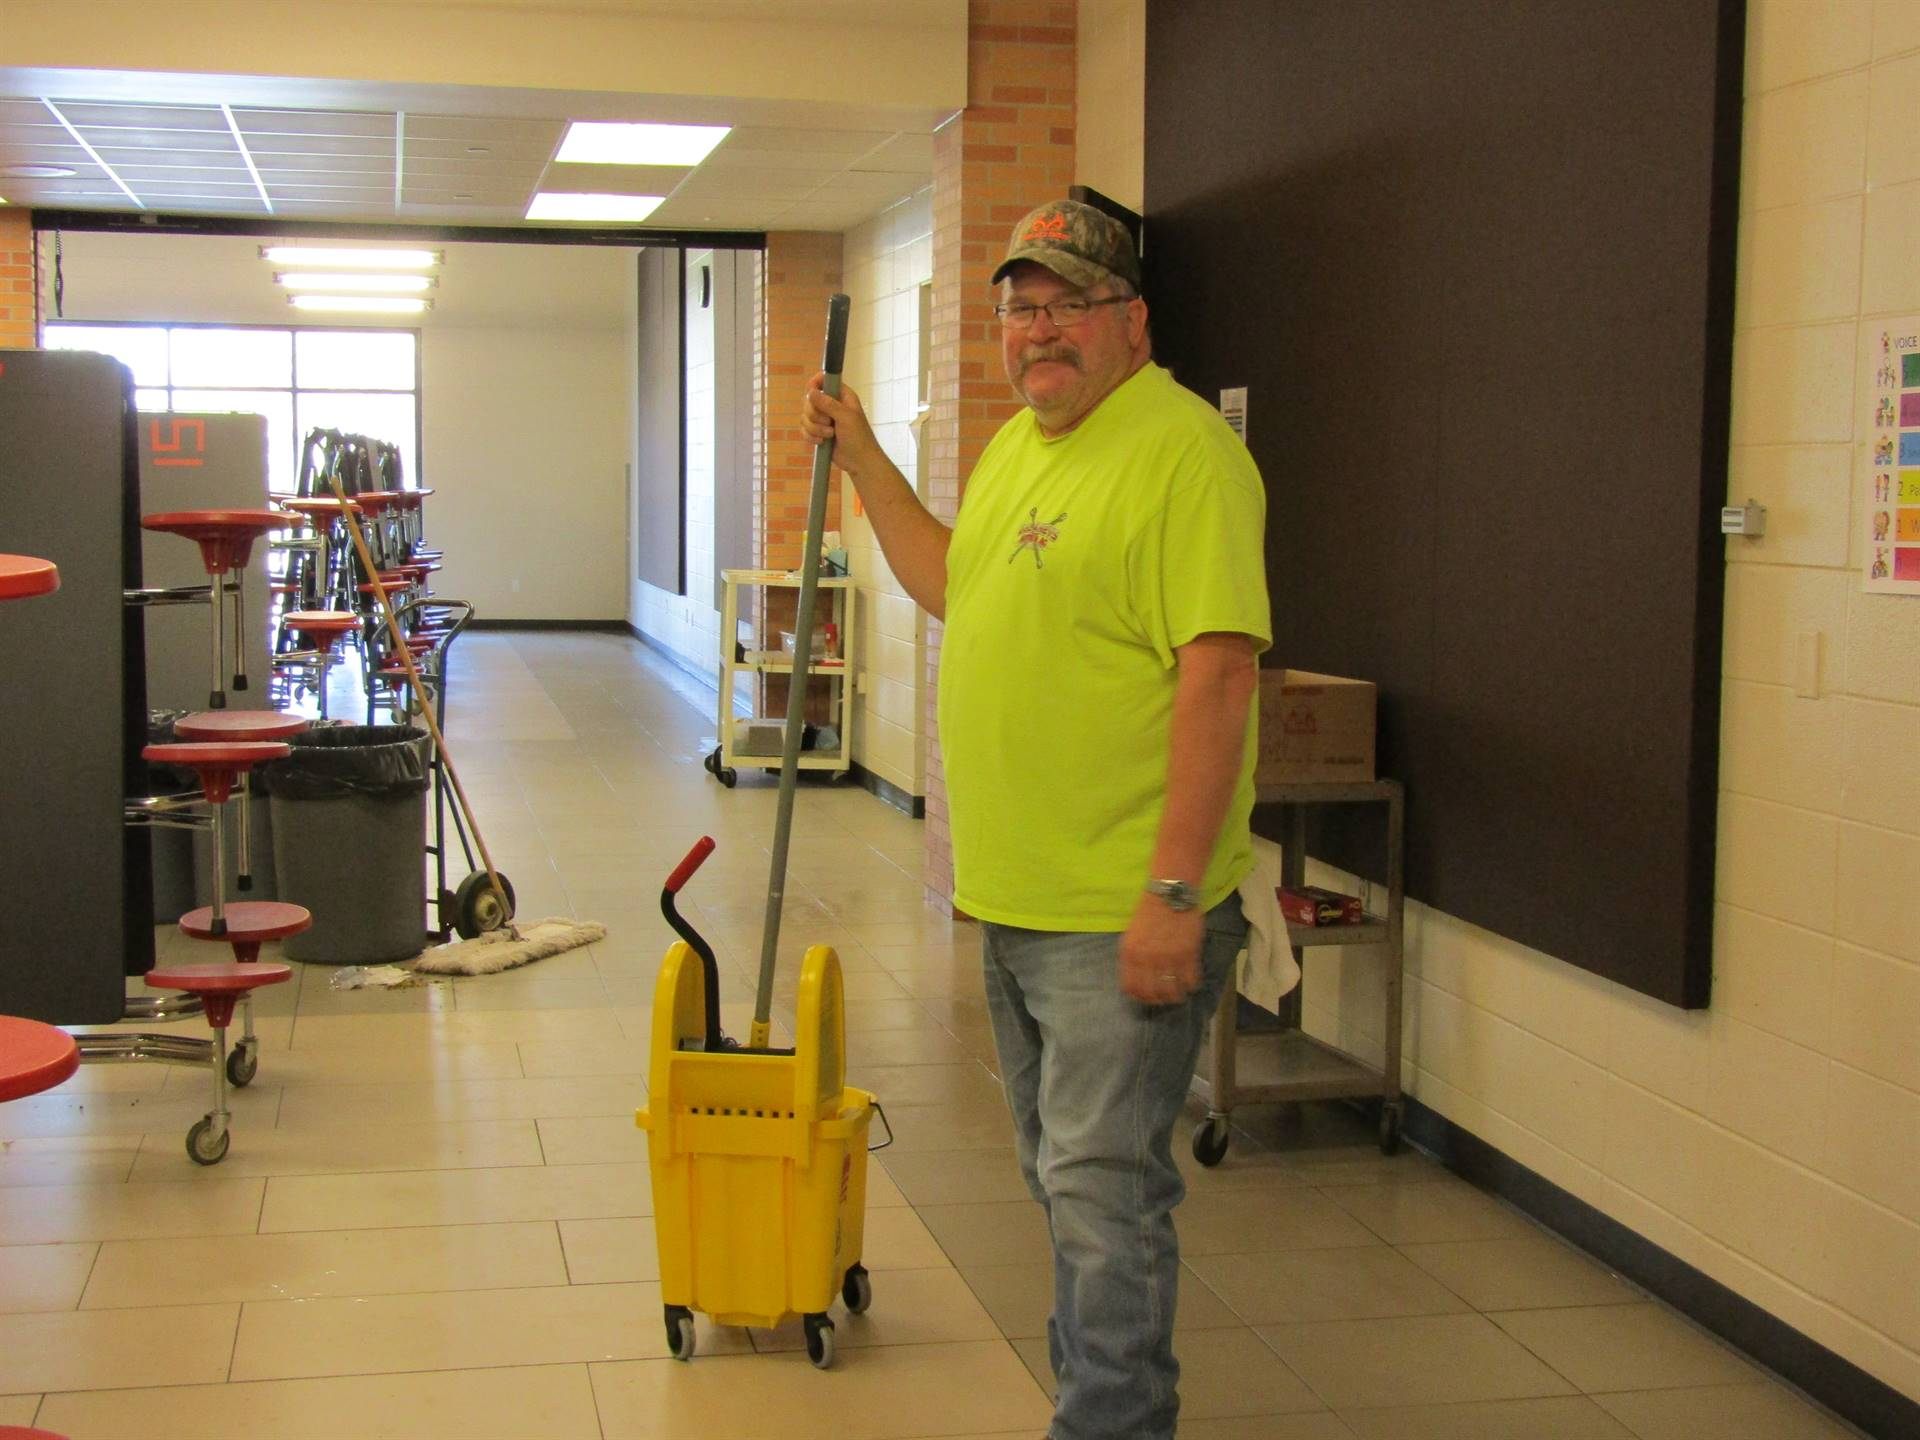 Custodian prepares floor for cleaning